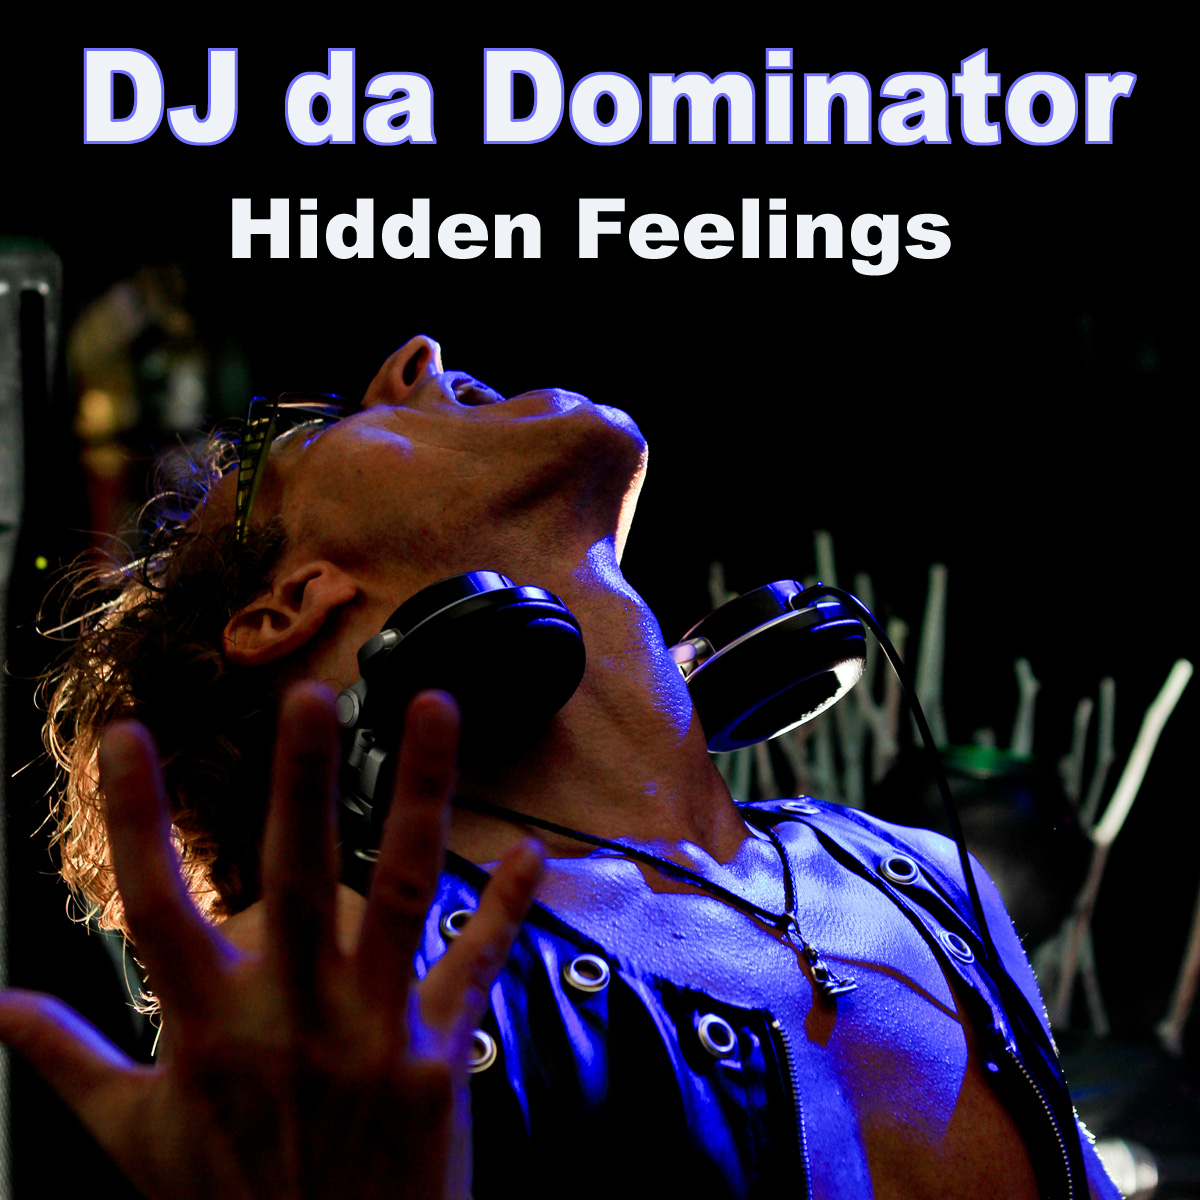 DJdaDOMINATOR_hidden-feelings2